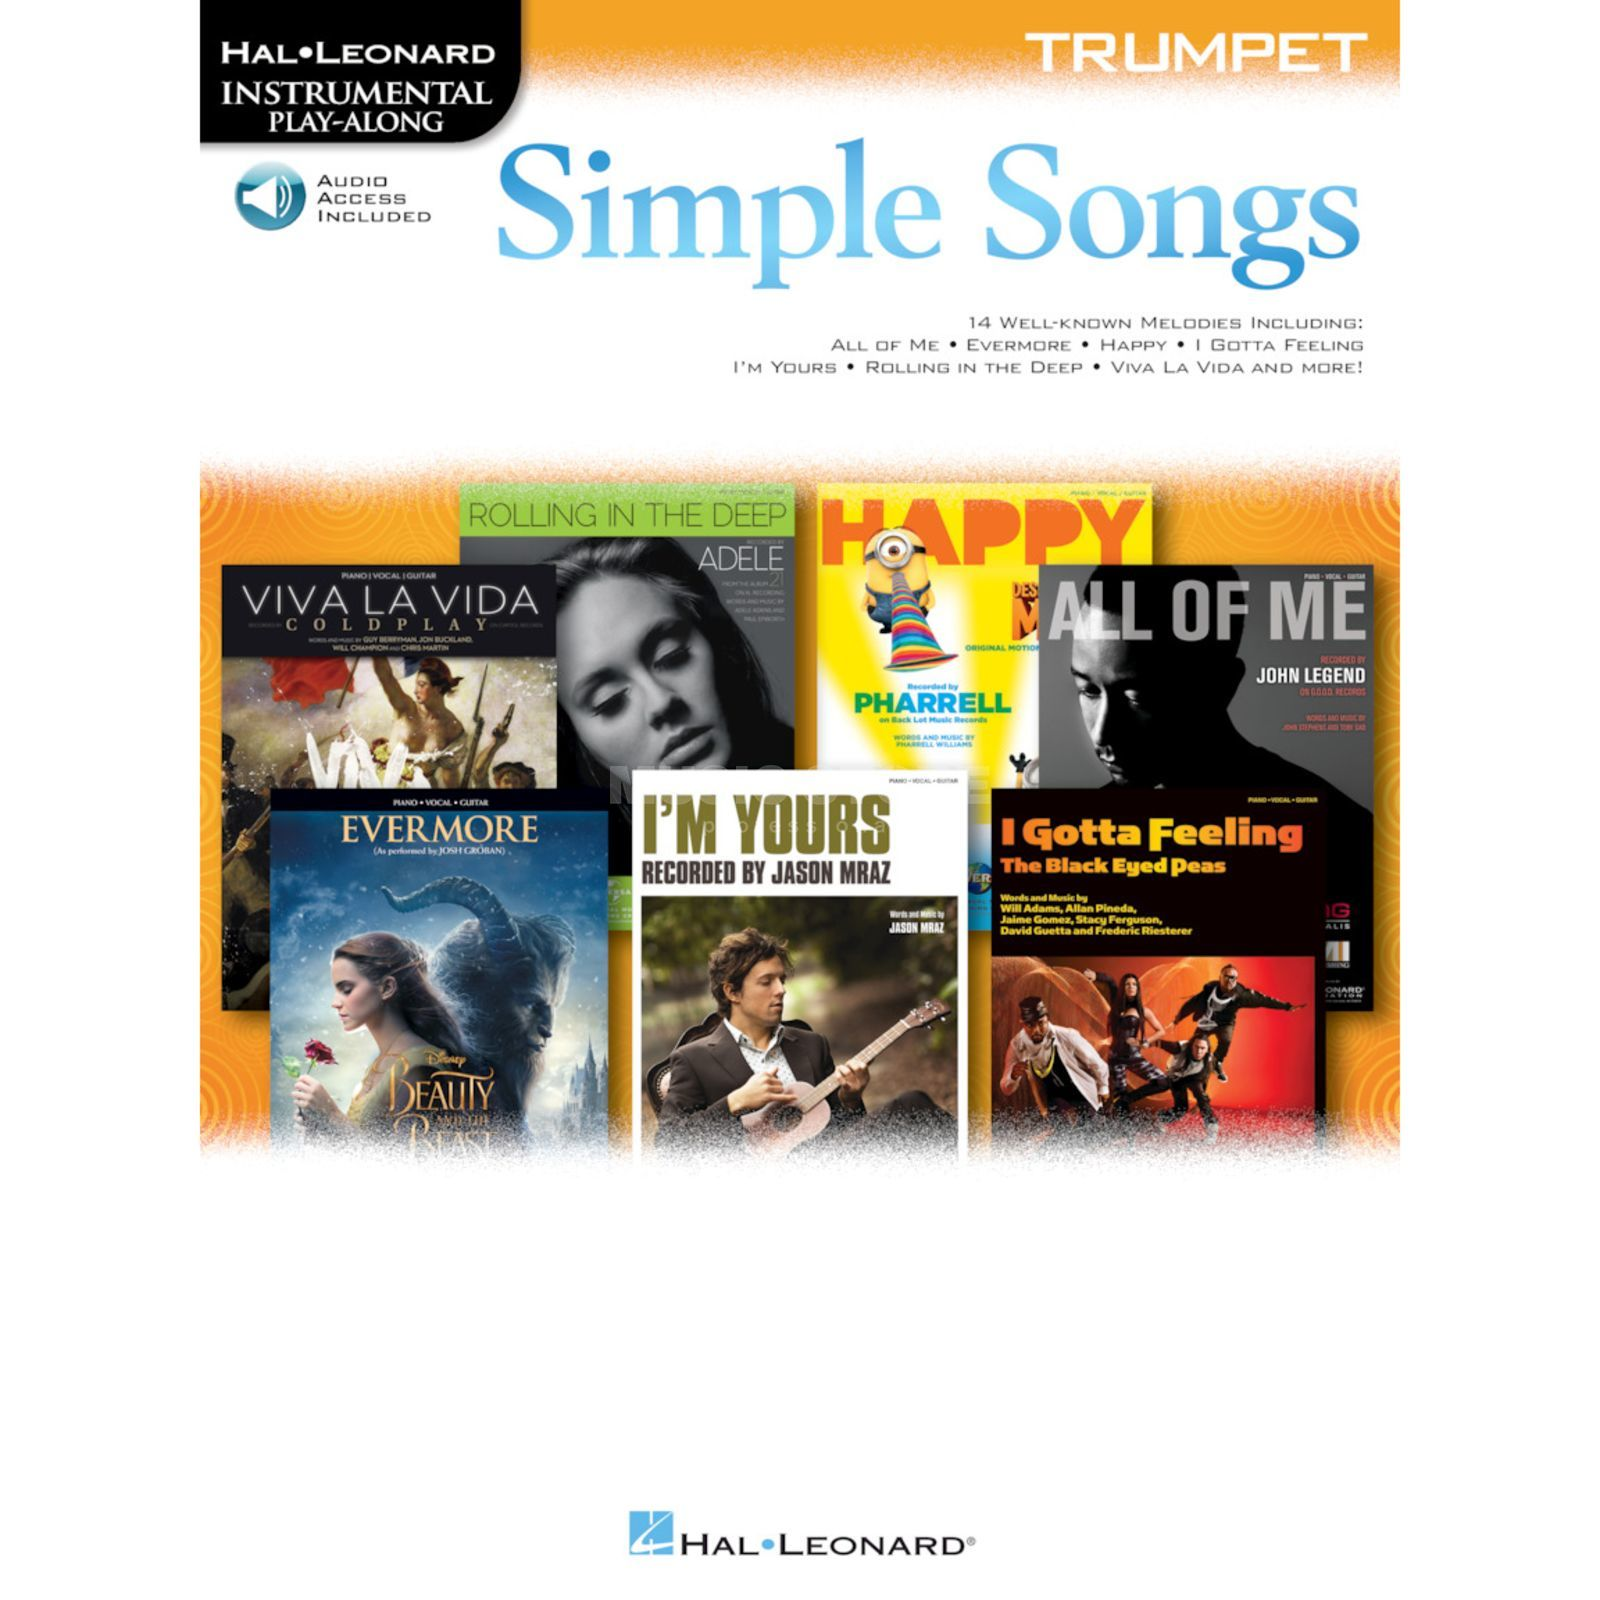 Hal Leonard Instrumental Play-Along: Simple Songs - Trumpet Image du produit